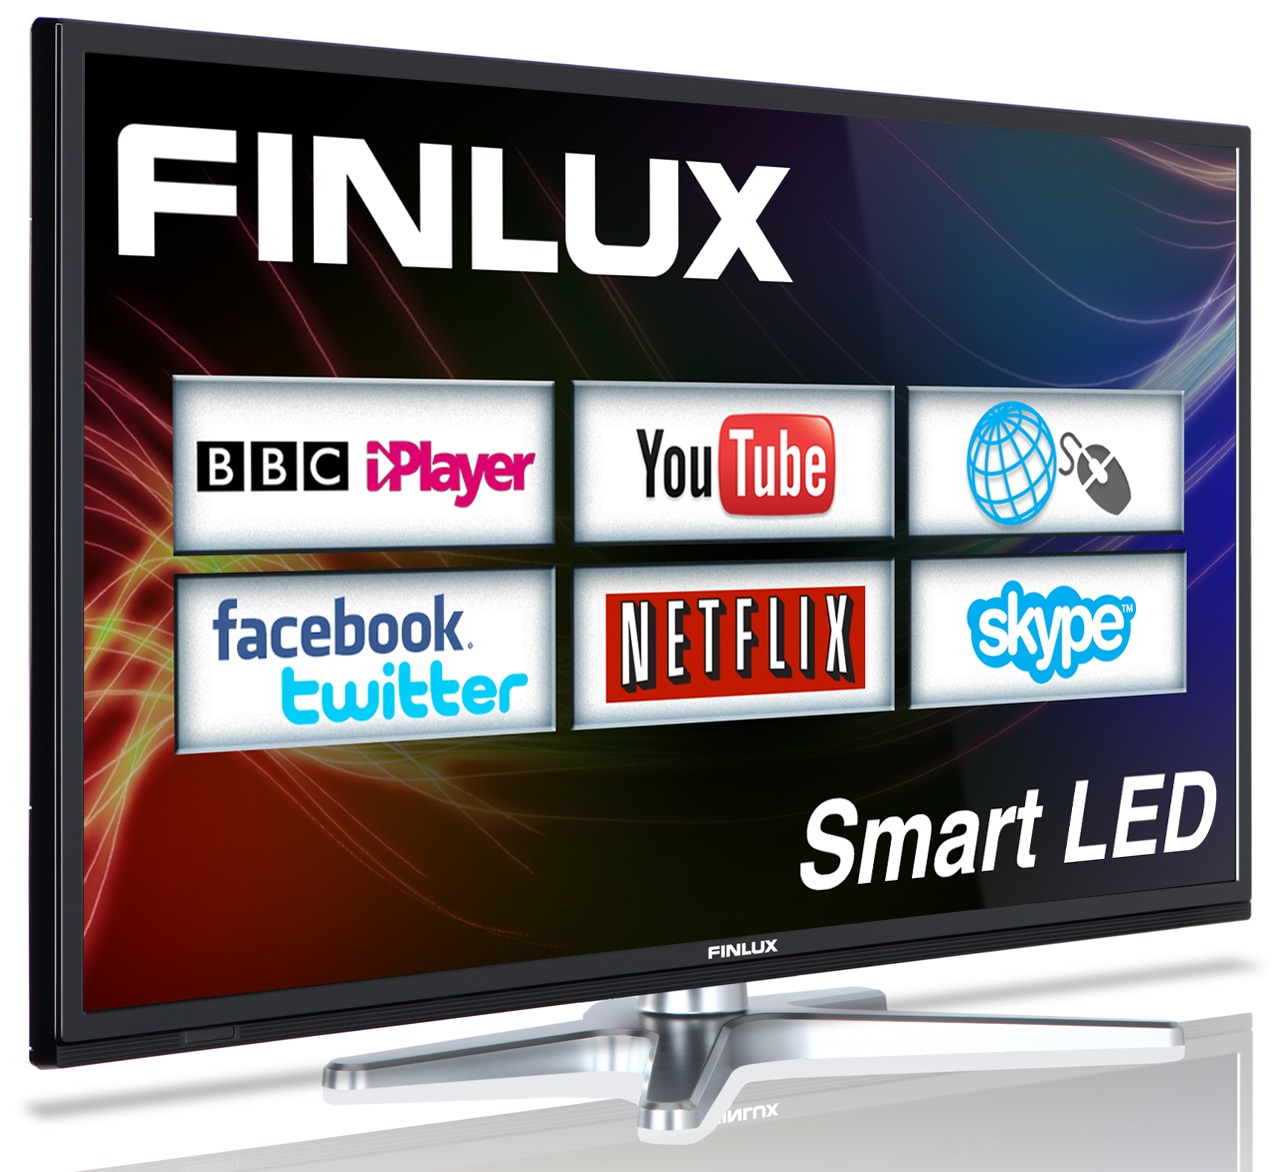 Finlux 40'' Smart LED TV Web Browsing Netflix Skype Freeview HD PVR (40F8073-T)